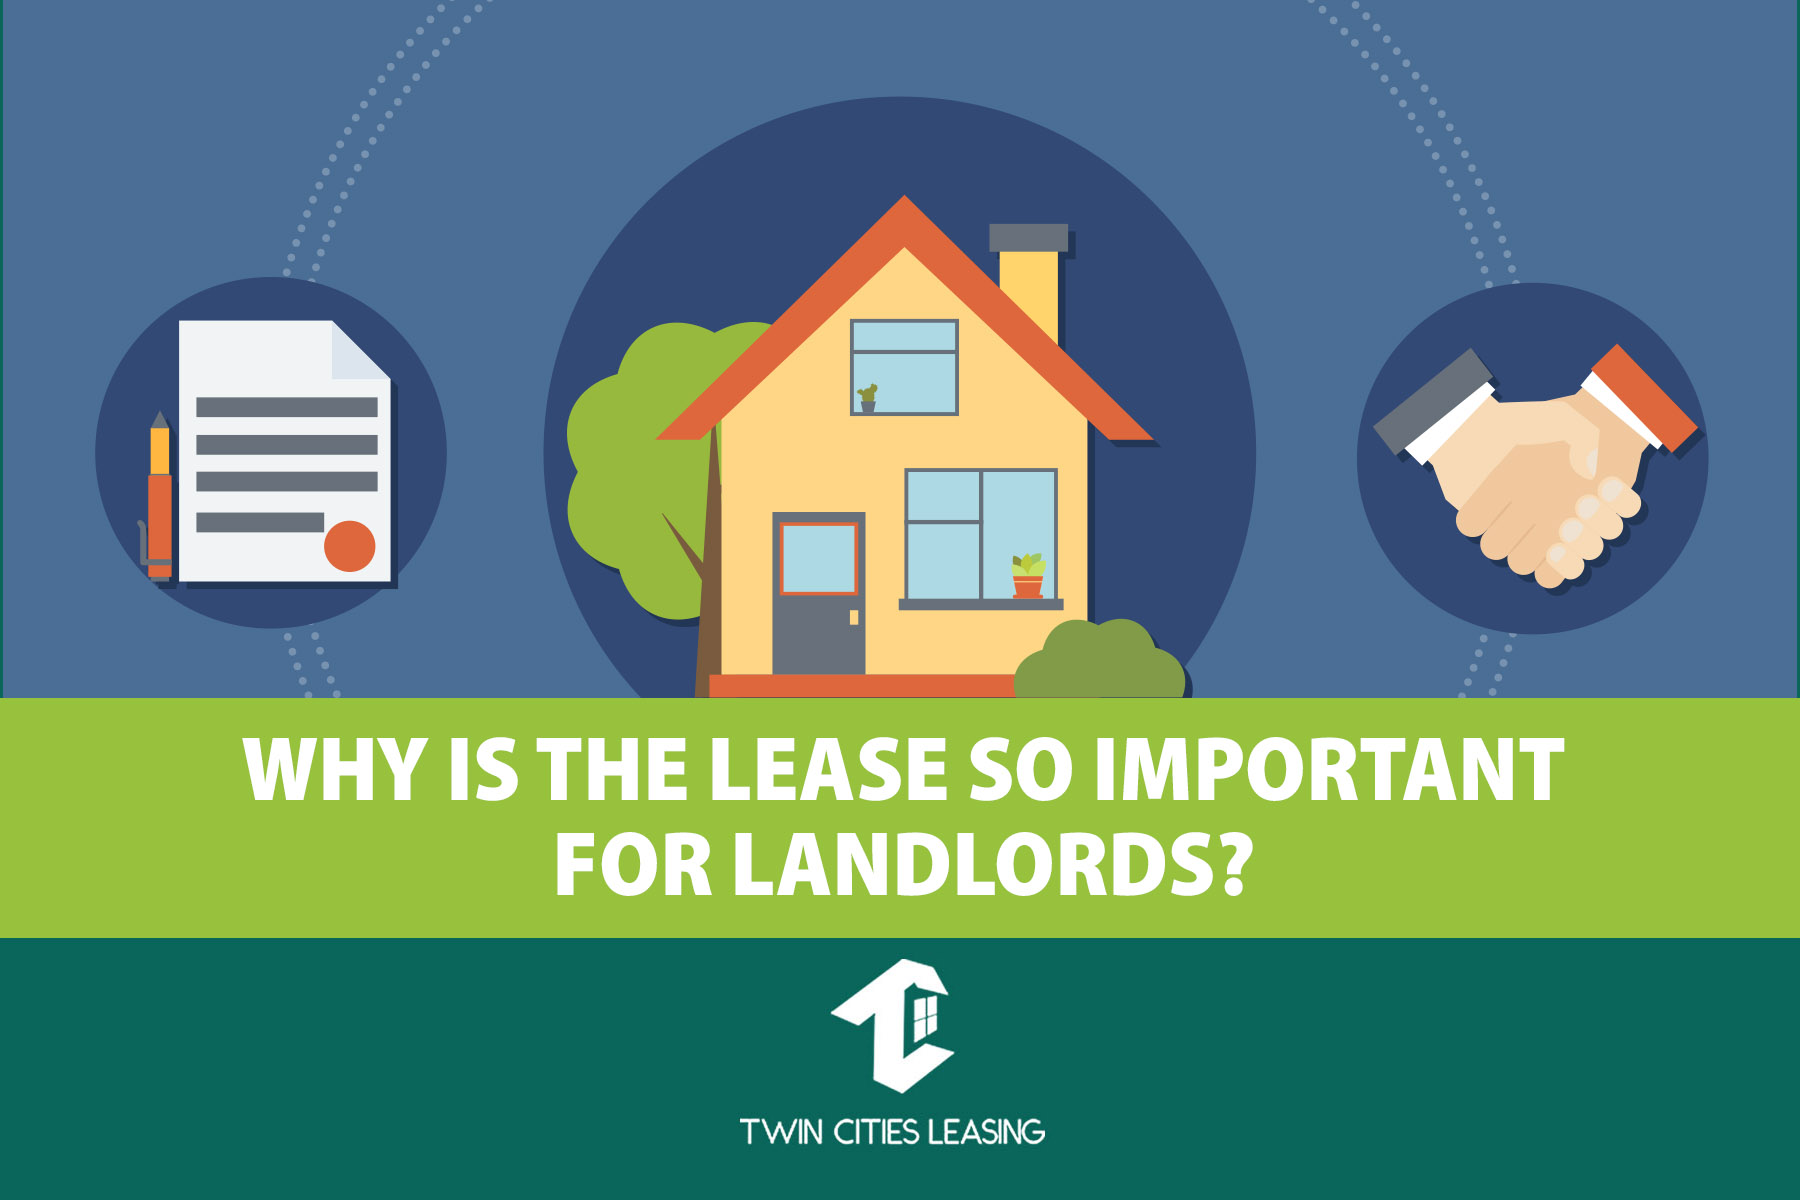 Why is the Lease so Important for Landlords?